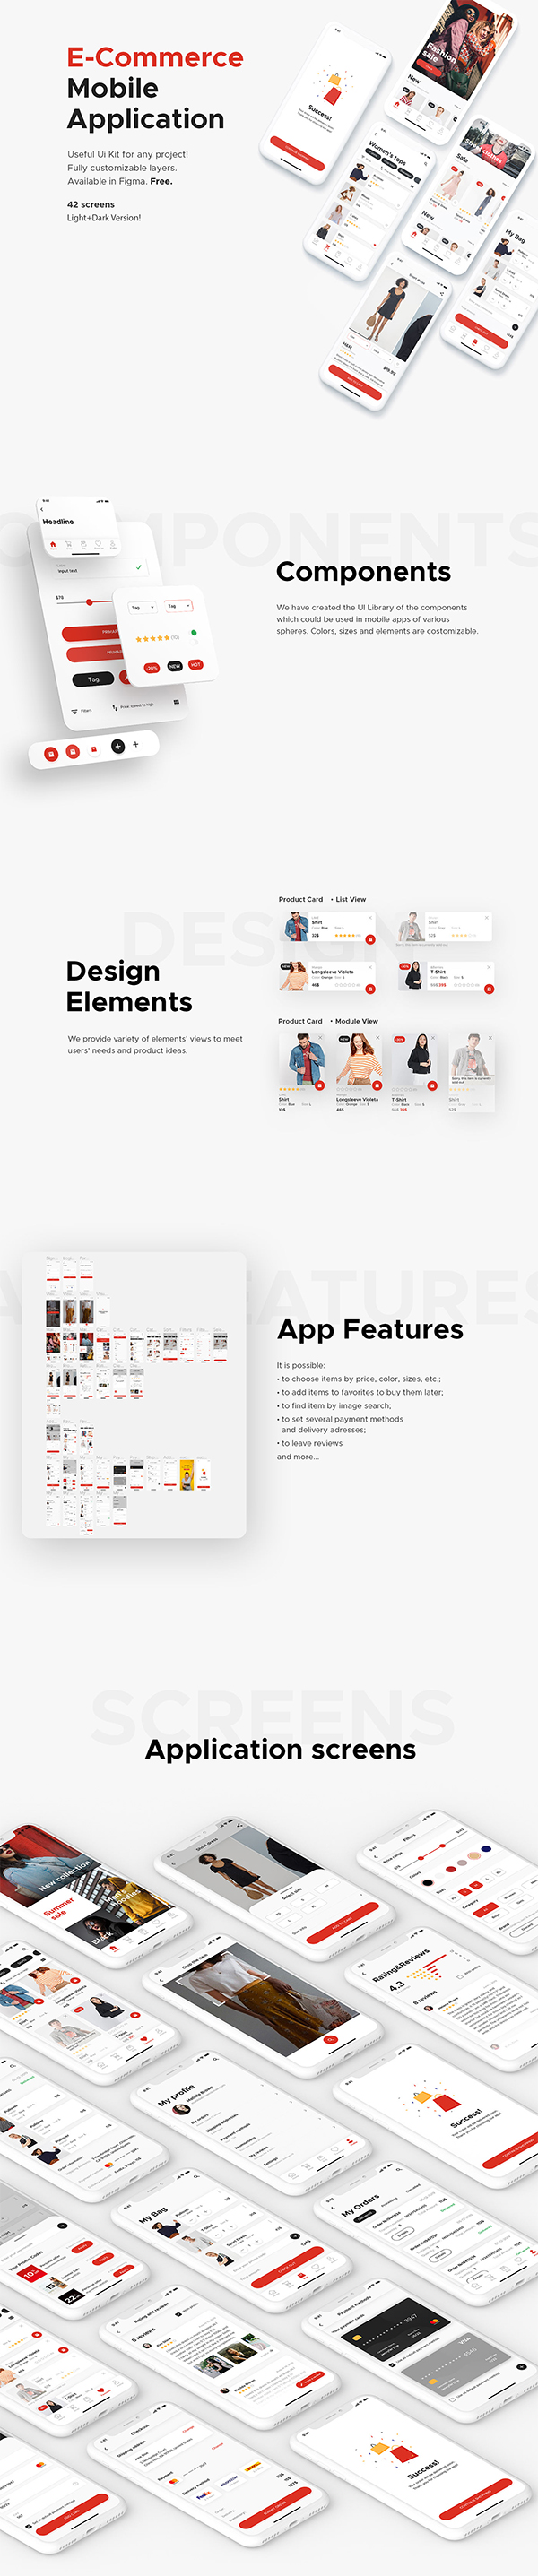 Free | E-Commerce Mobile Application